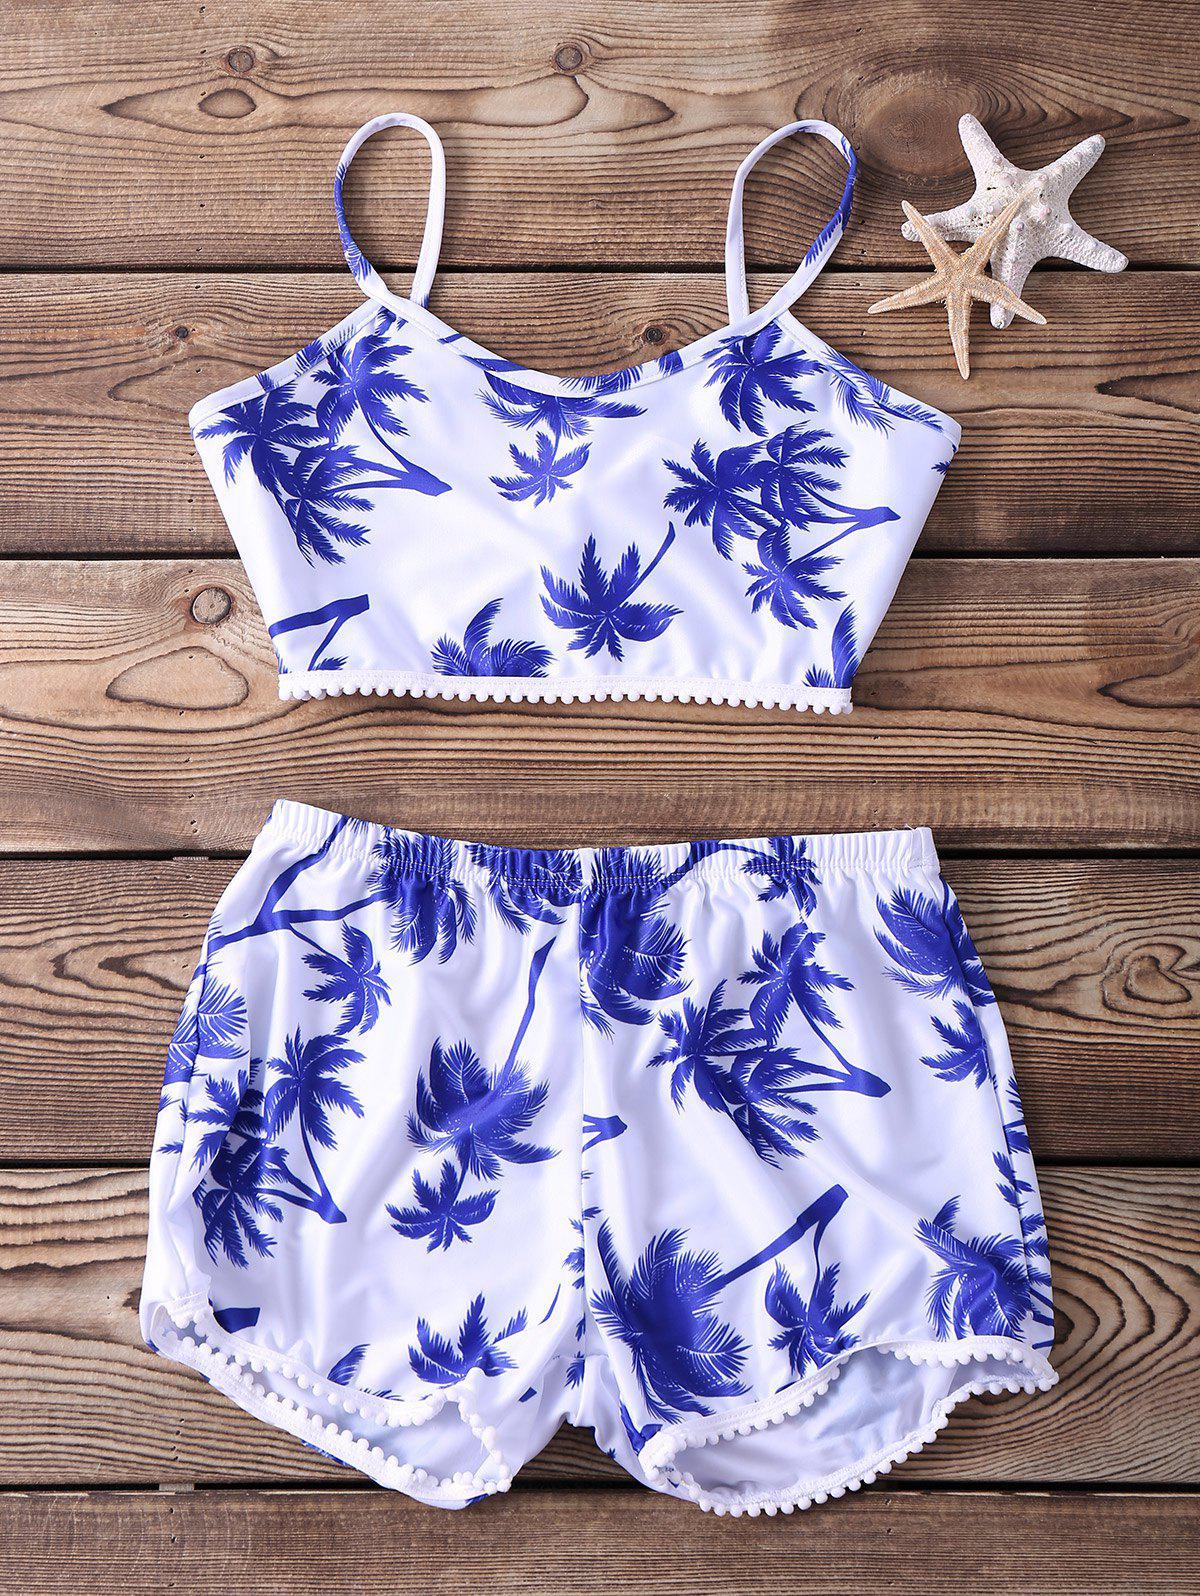 Stylish Spaghetti Strap Two-Piece Printed Women's Swimsuit